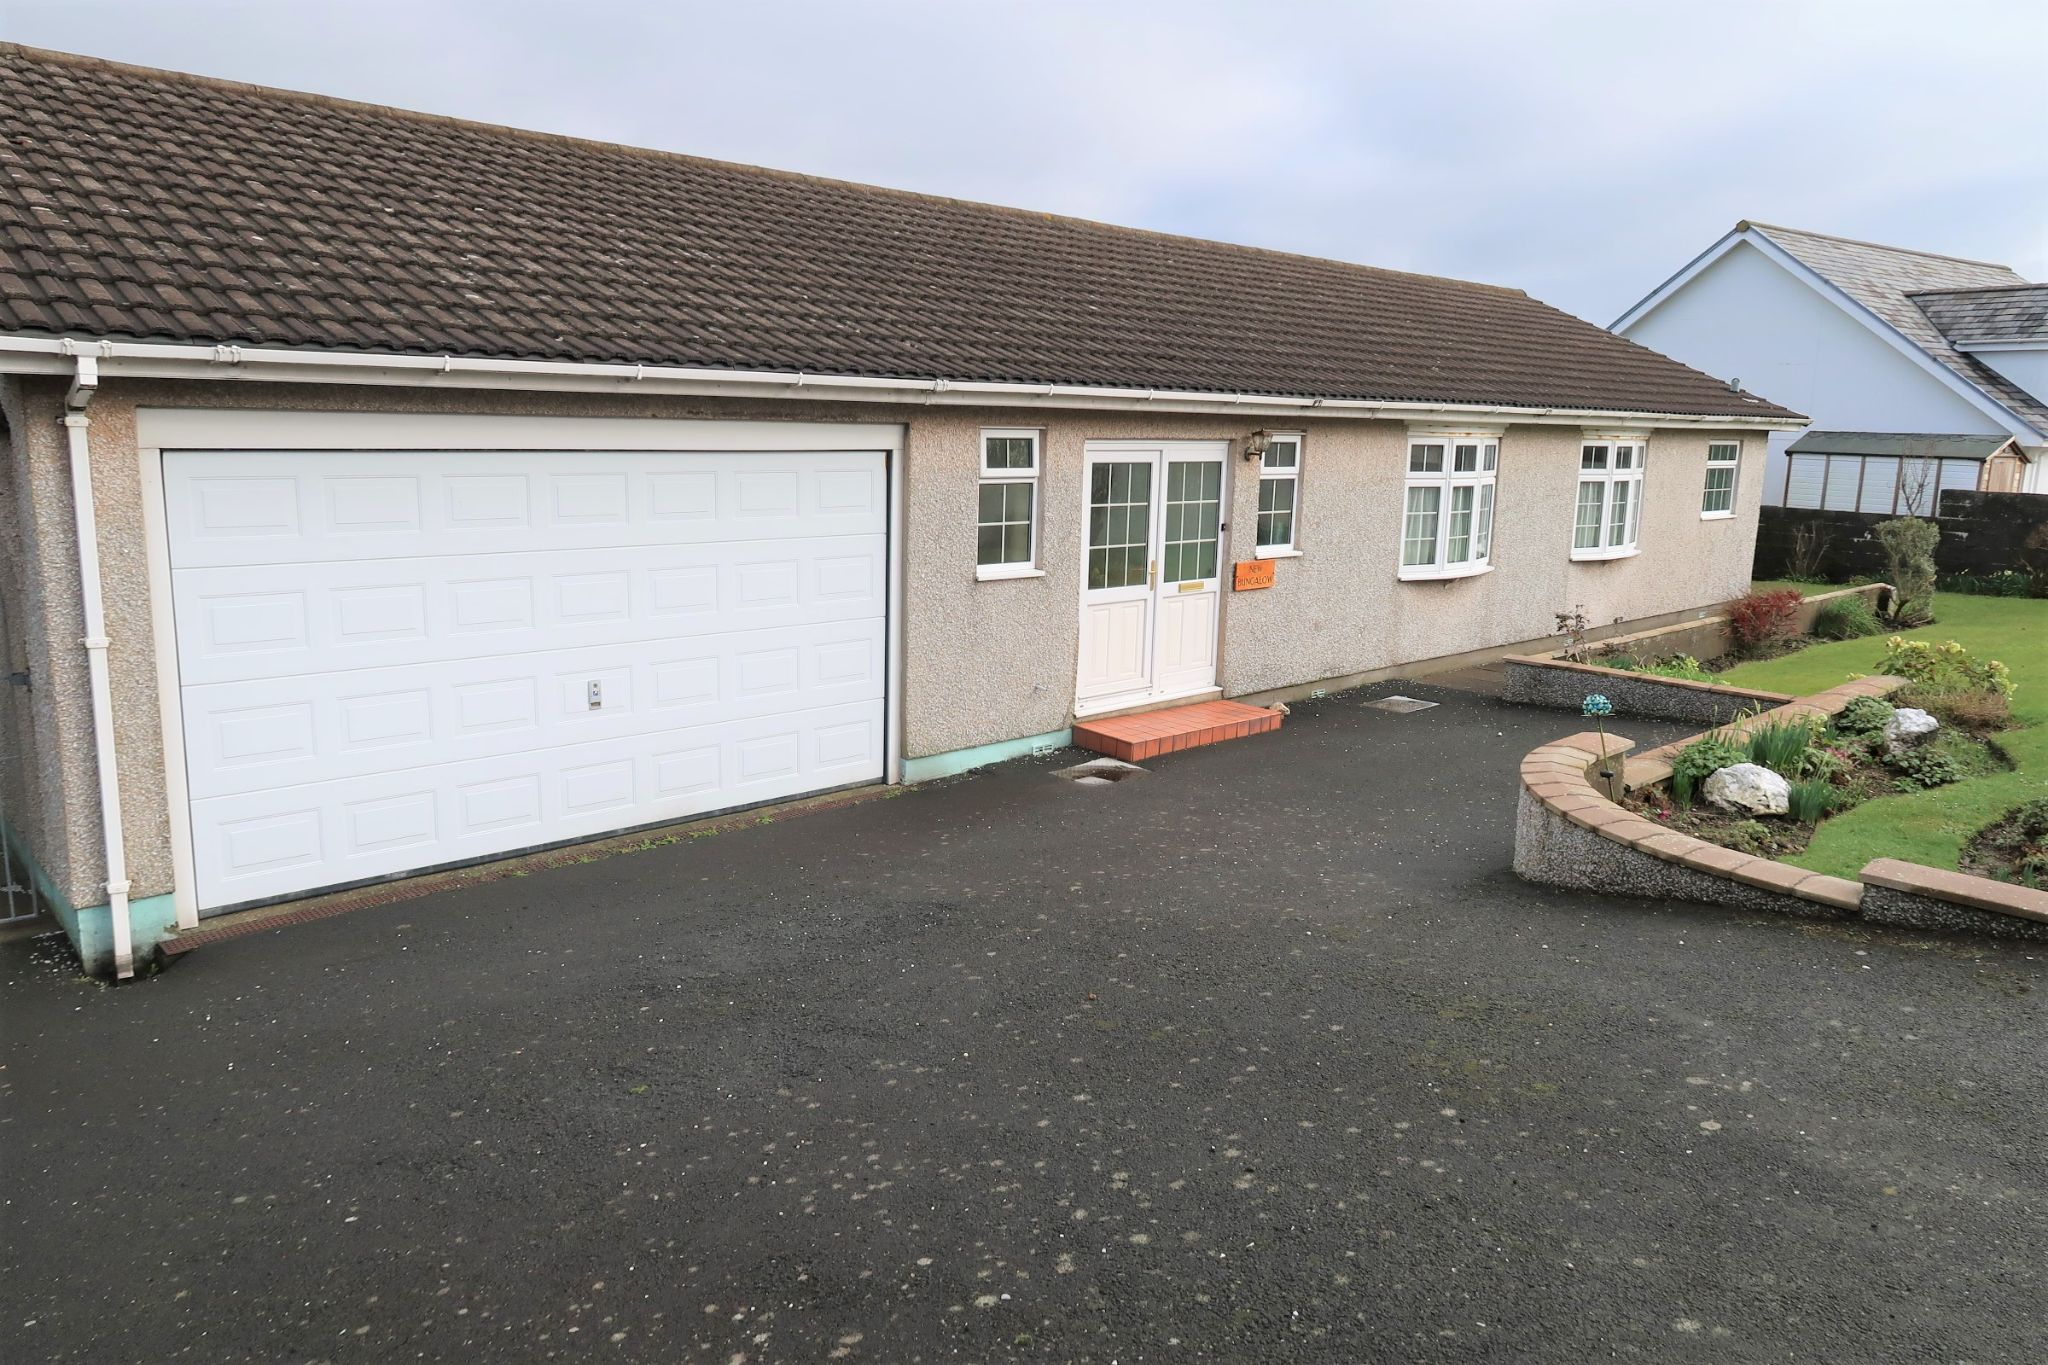 4 bedroom detached bungalow Sold in Port Erin - Property photograph